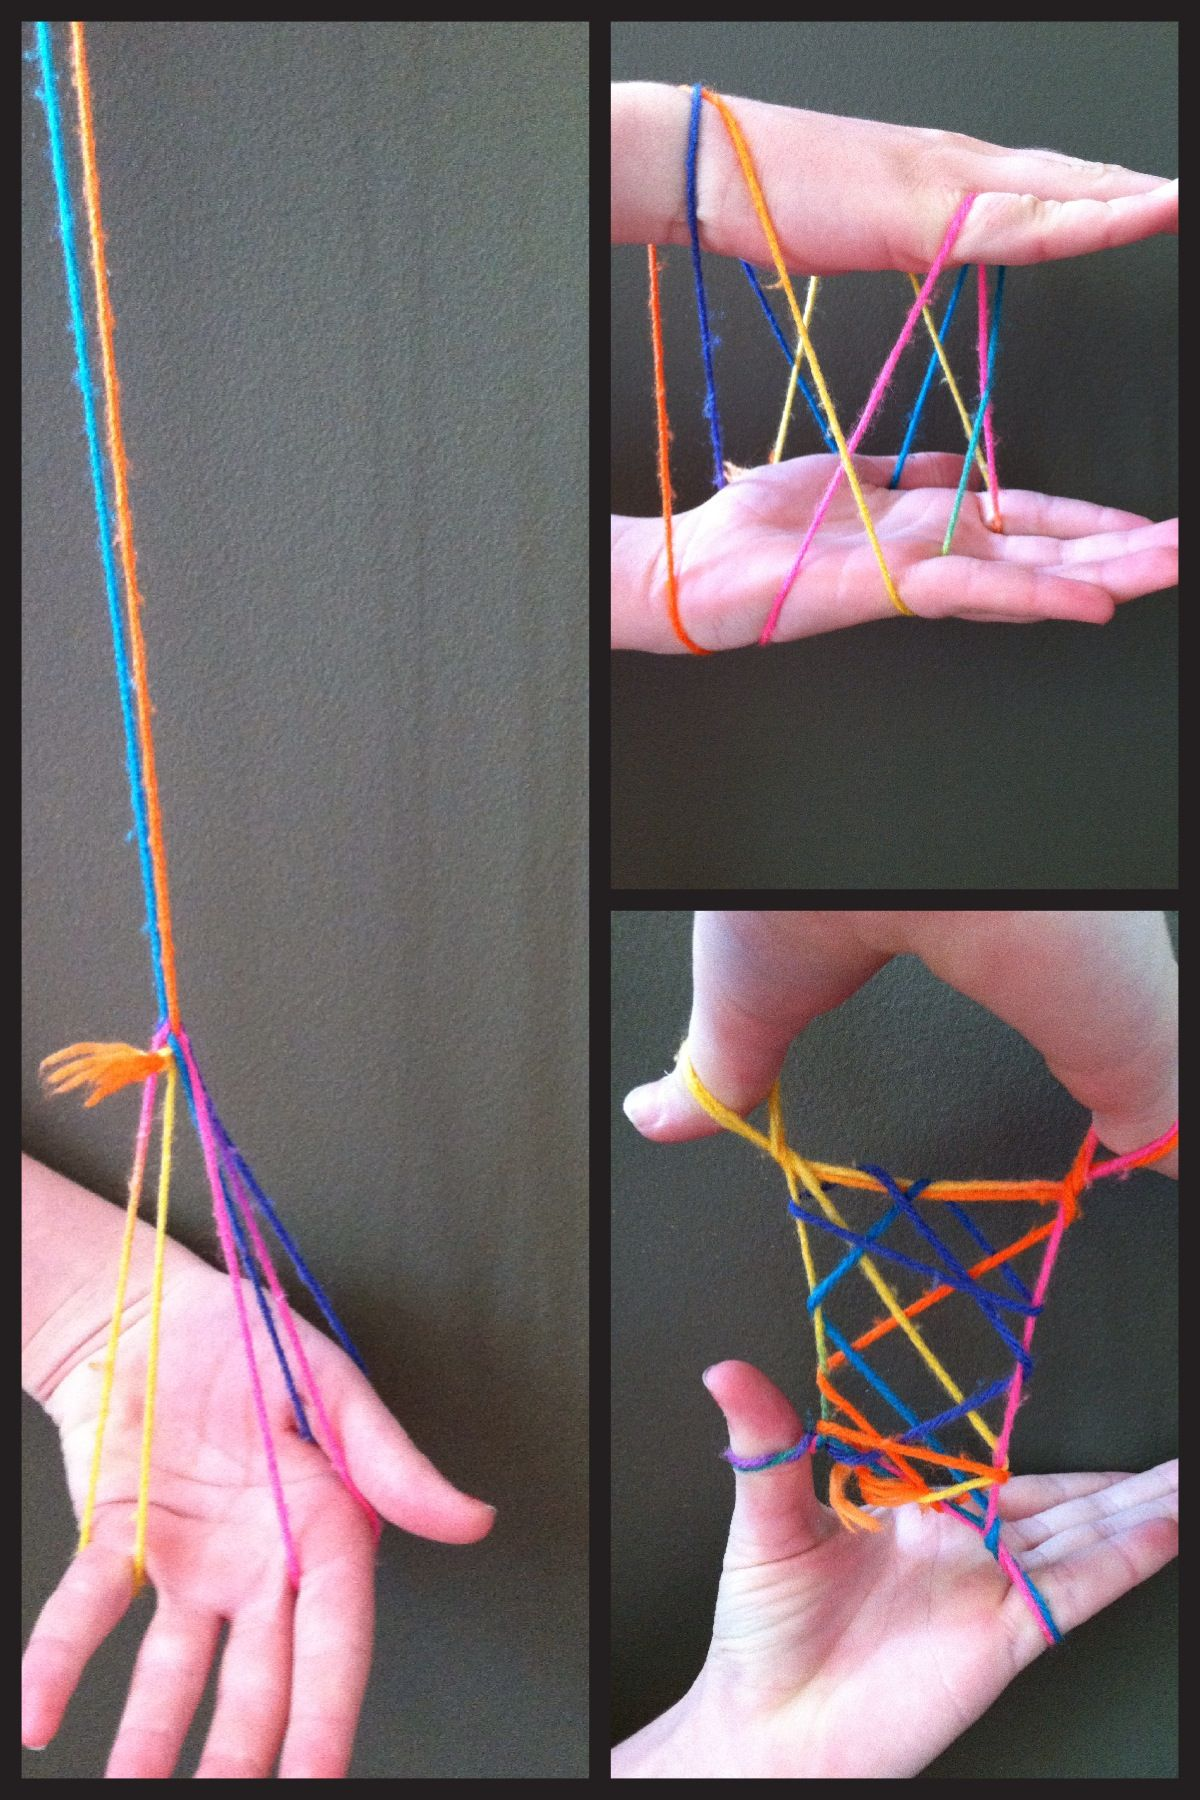 Pin on String figures